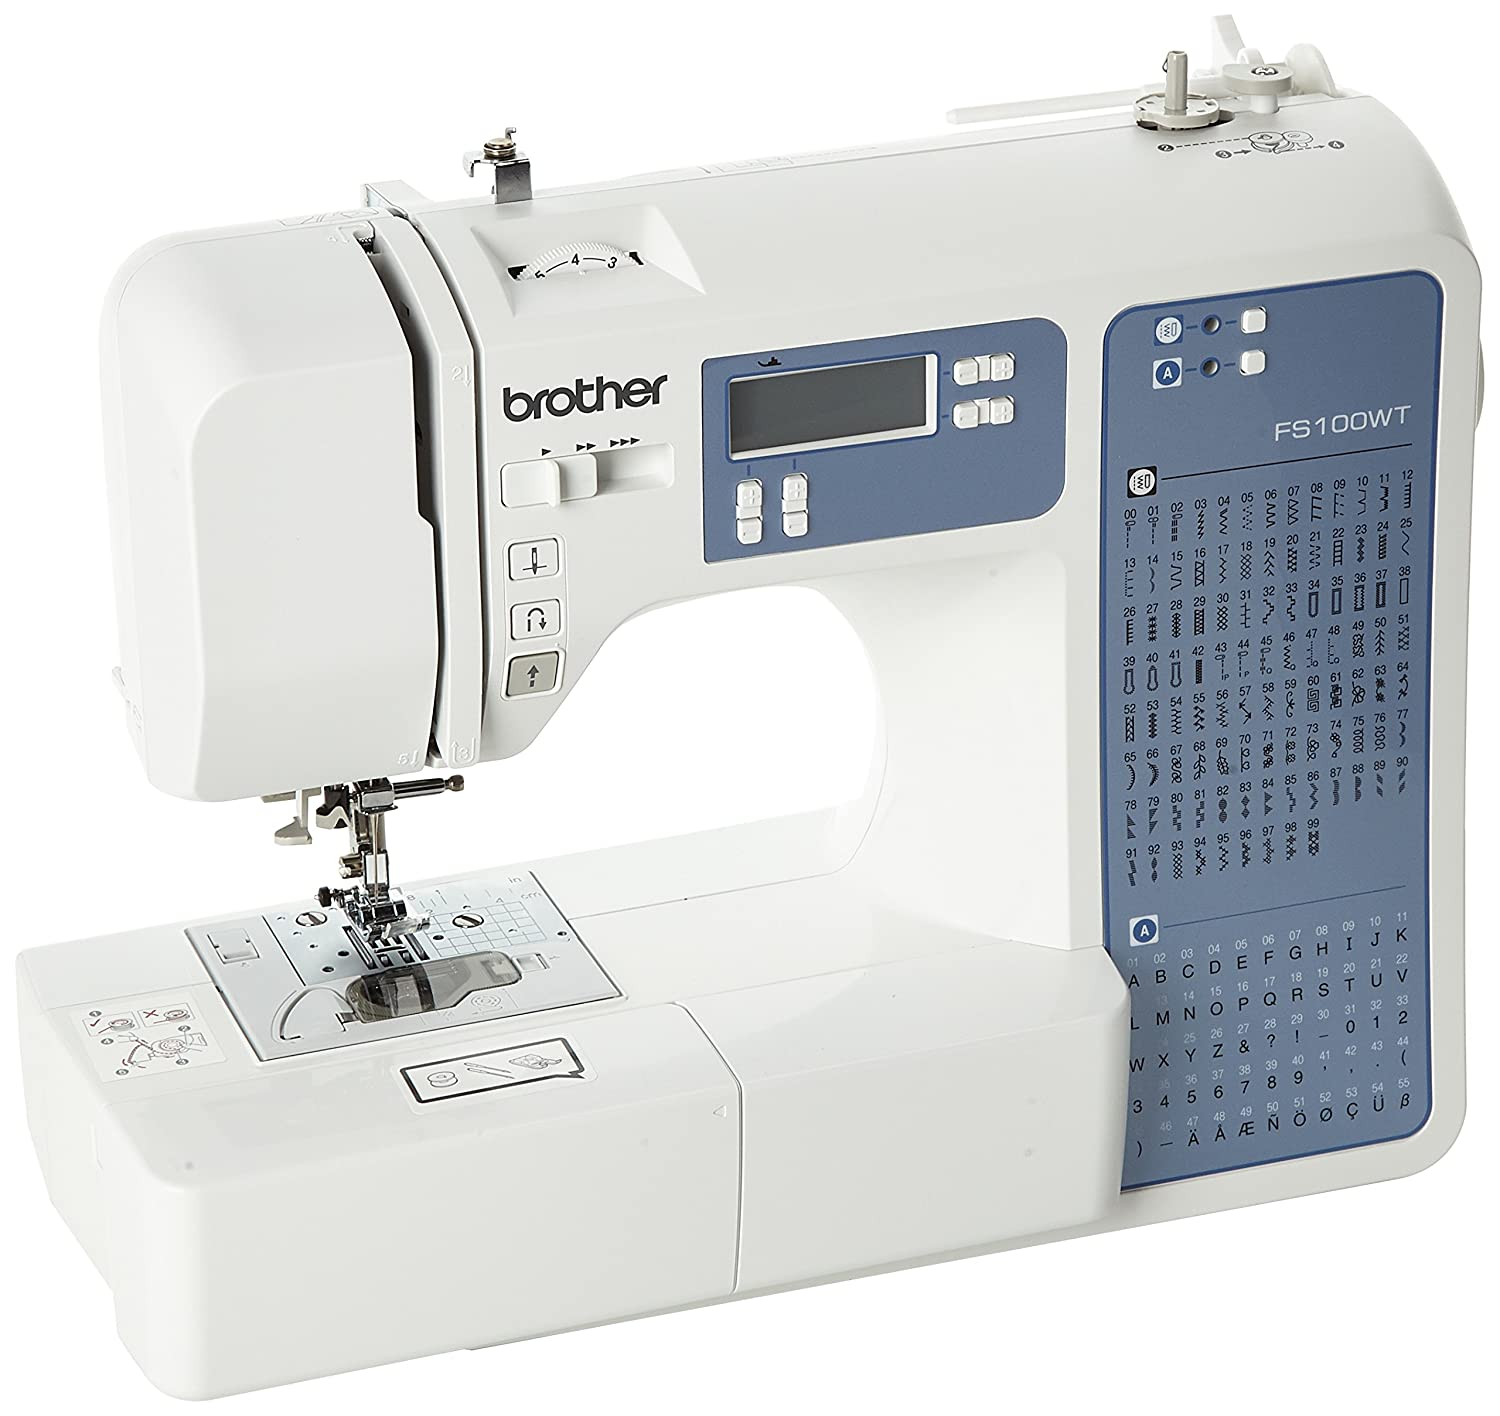 Best Embroidery Machine Reviews: A Must for Women in the Household 10